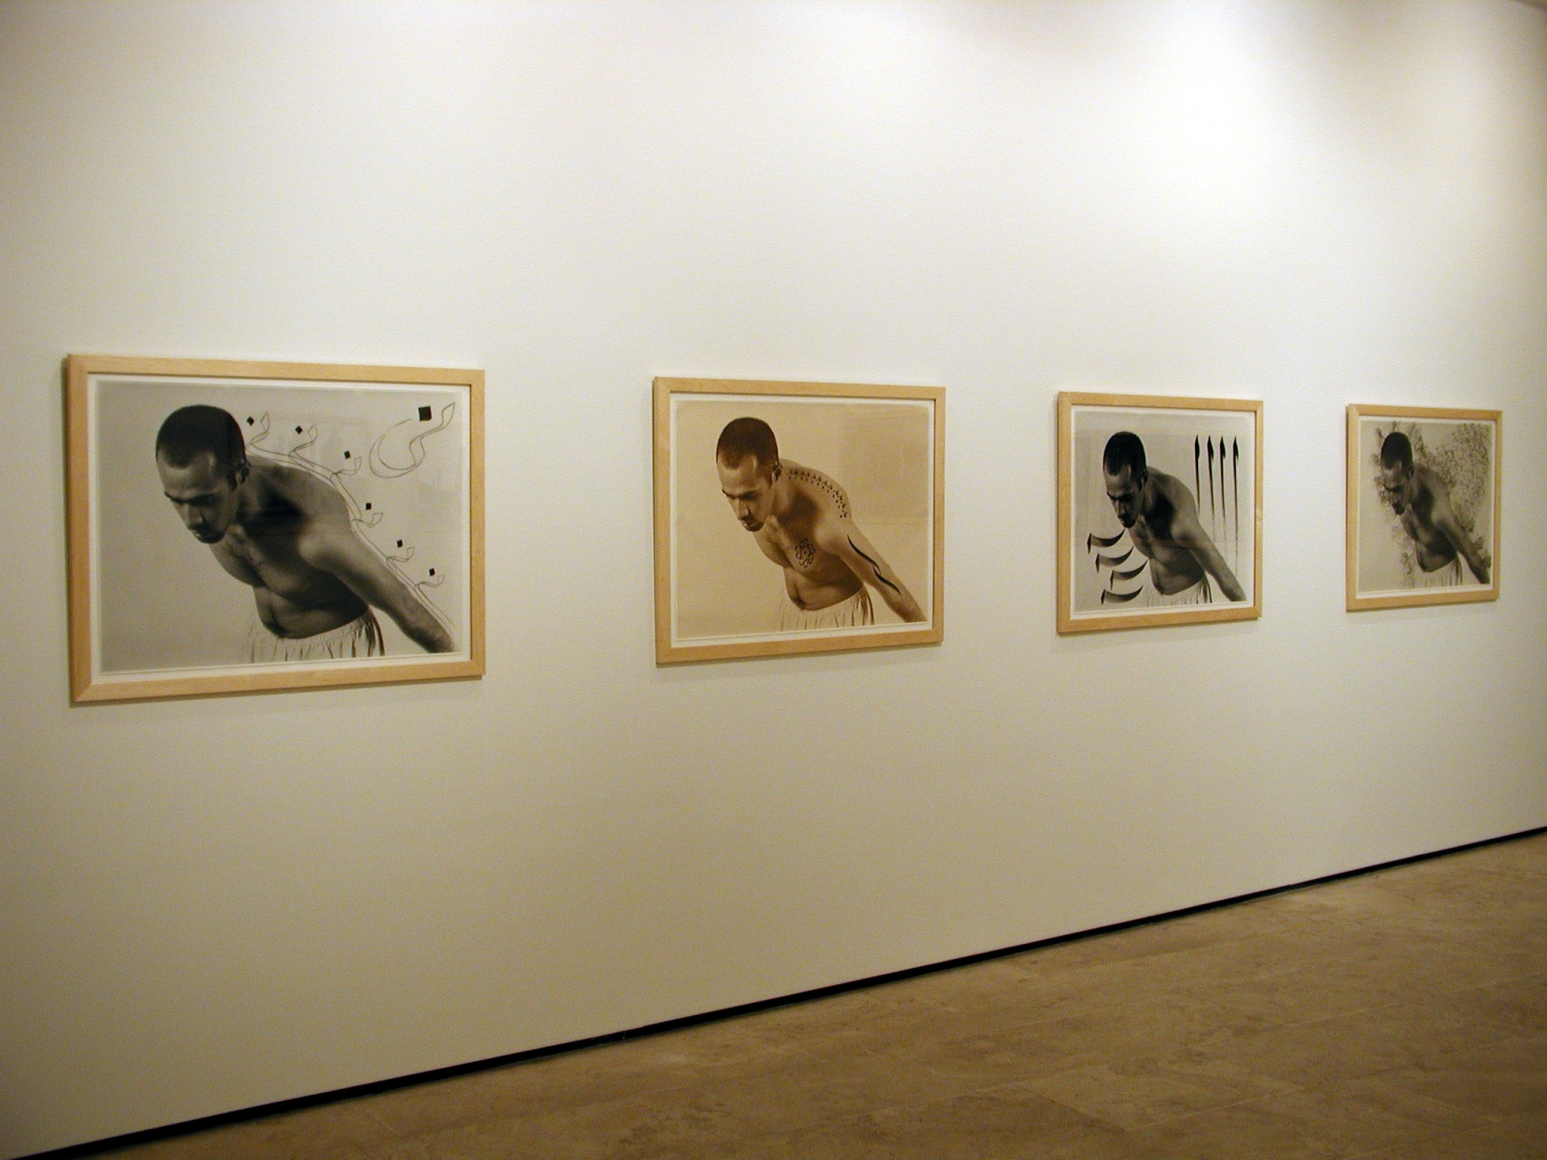 Four framed black and white and sepia tone photographs of a man in the exhibition Sadegh Tirafkan at Lehmann Maupin in New York in 2004